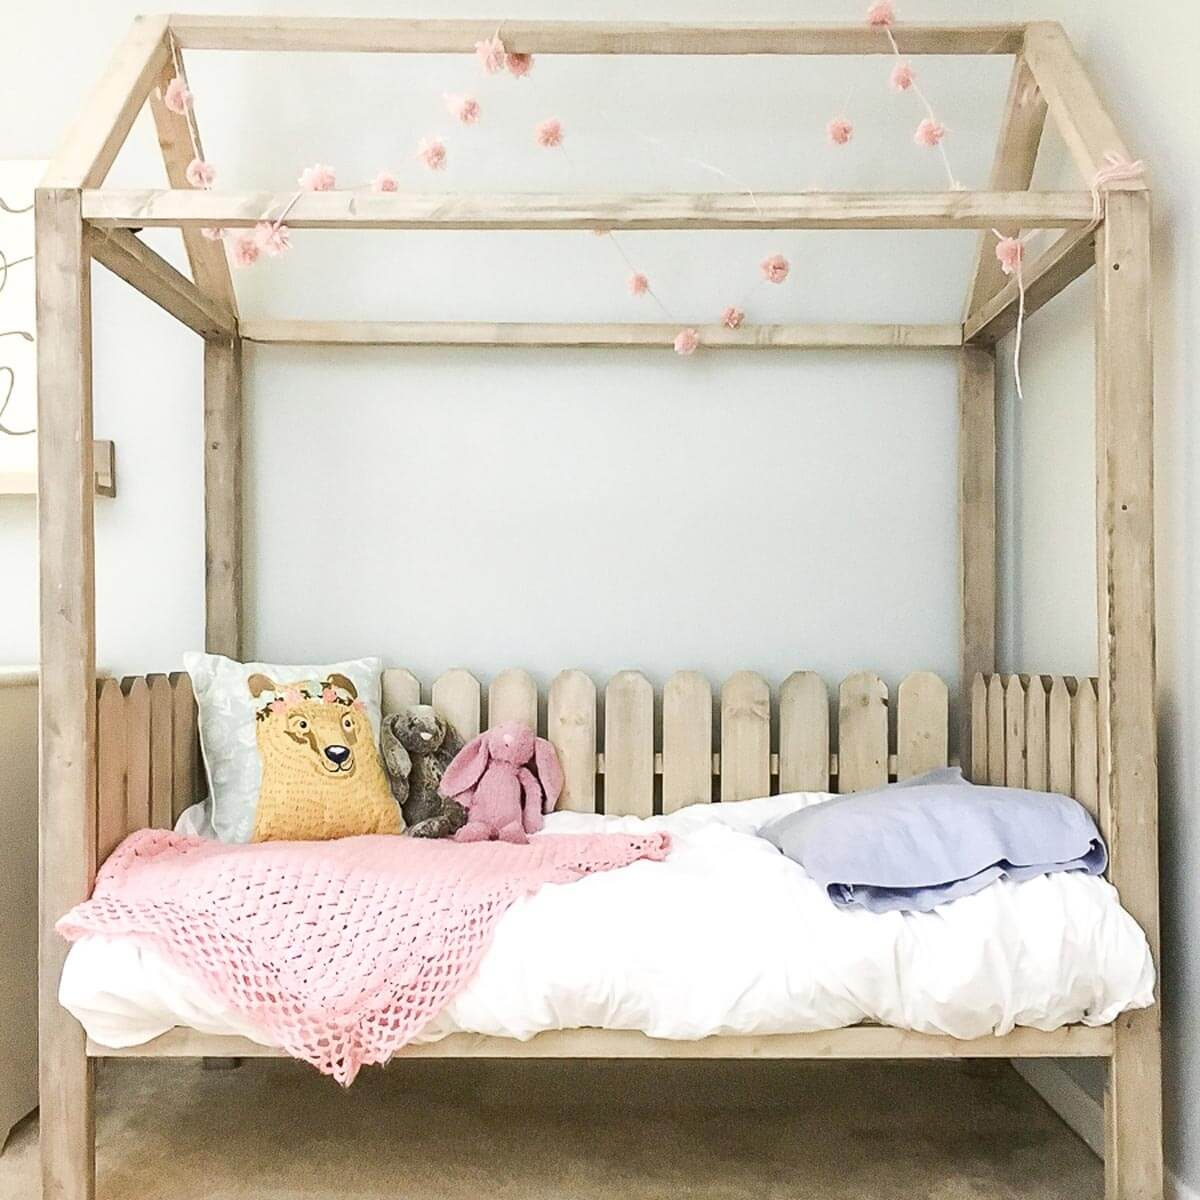 diy-toddler-house-bed